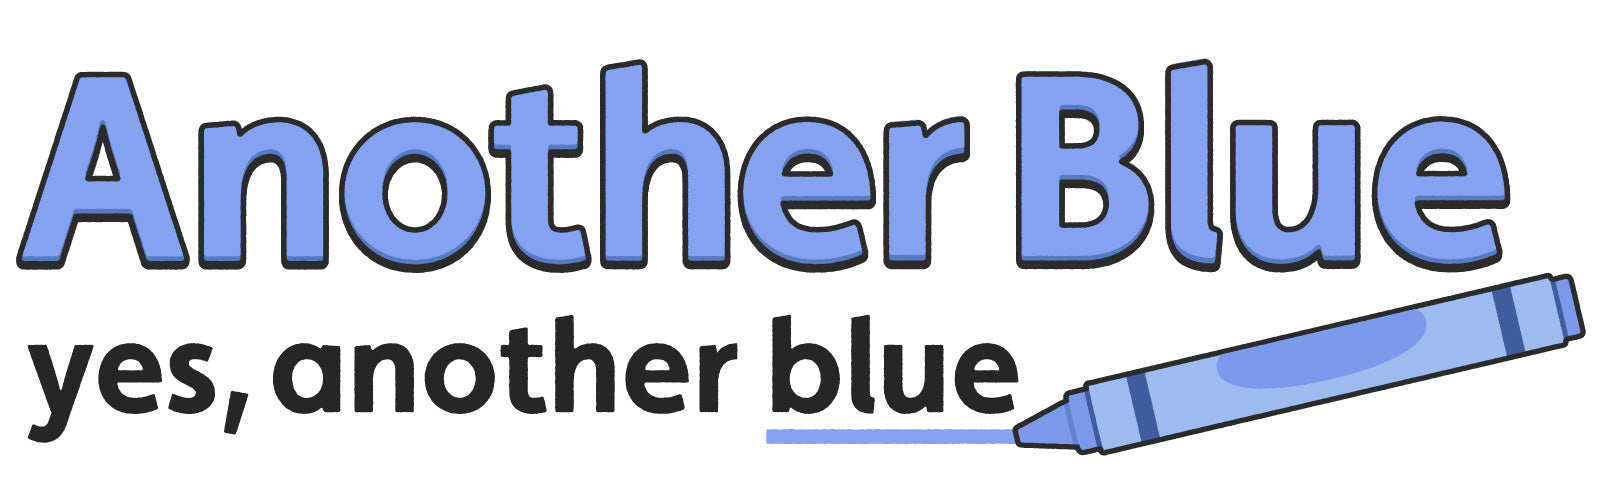 Another blue, yes, another blue headline text, with blue crayon underlying second blue